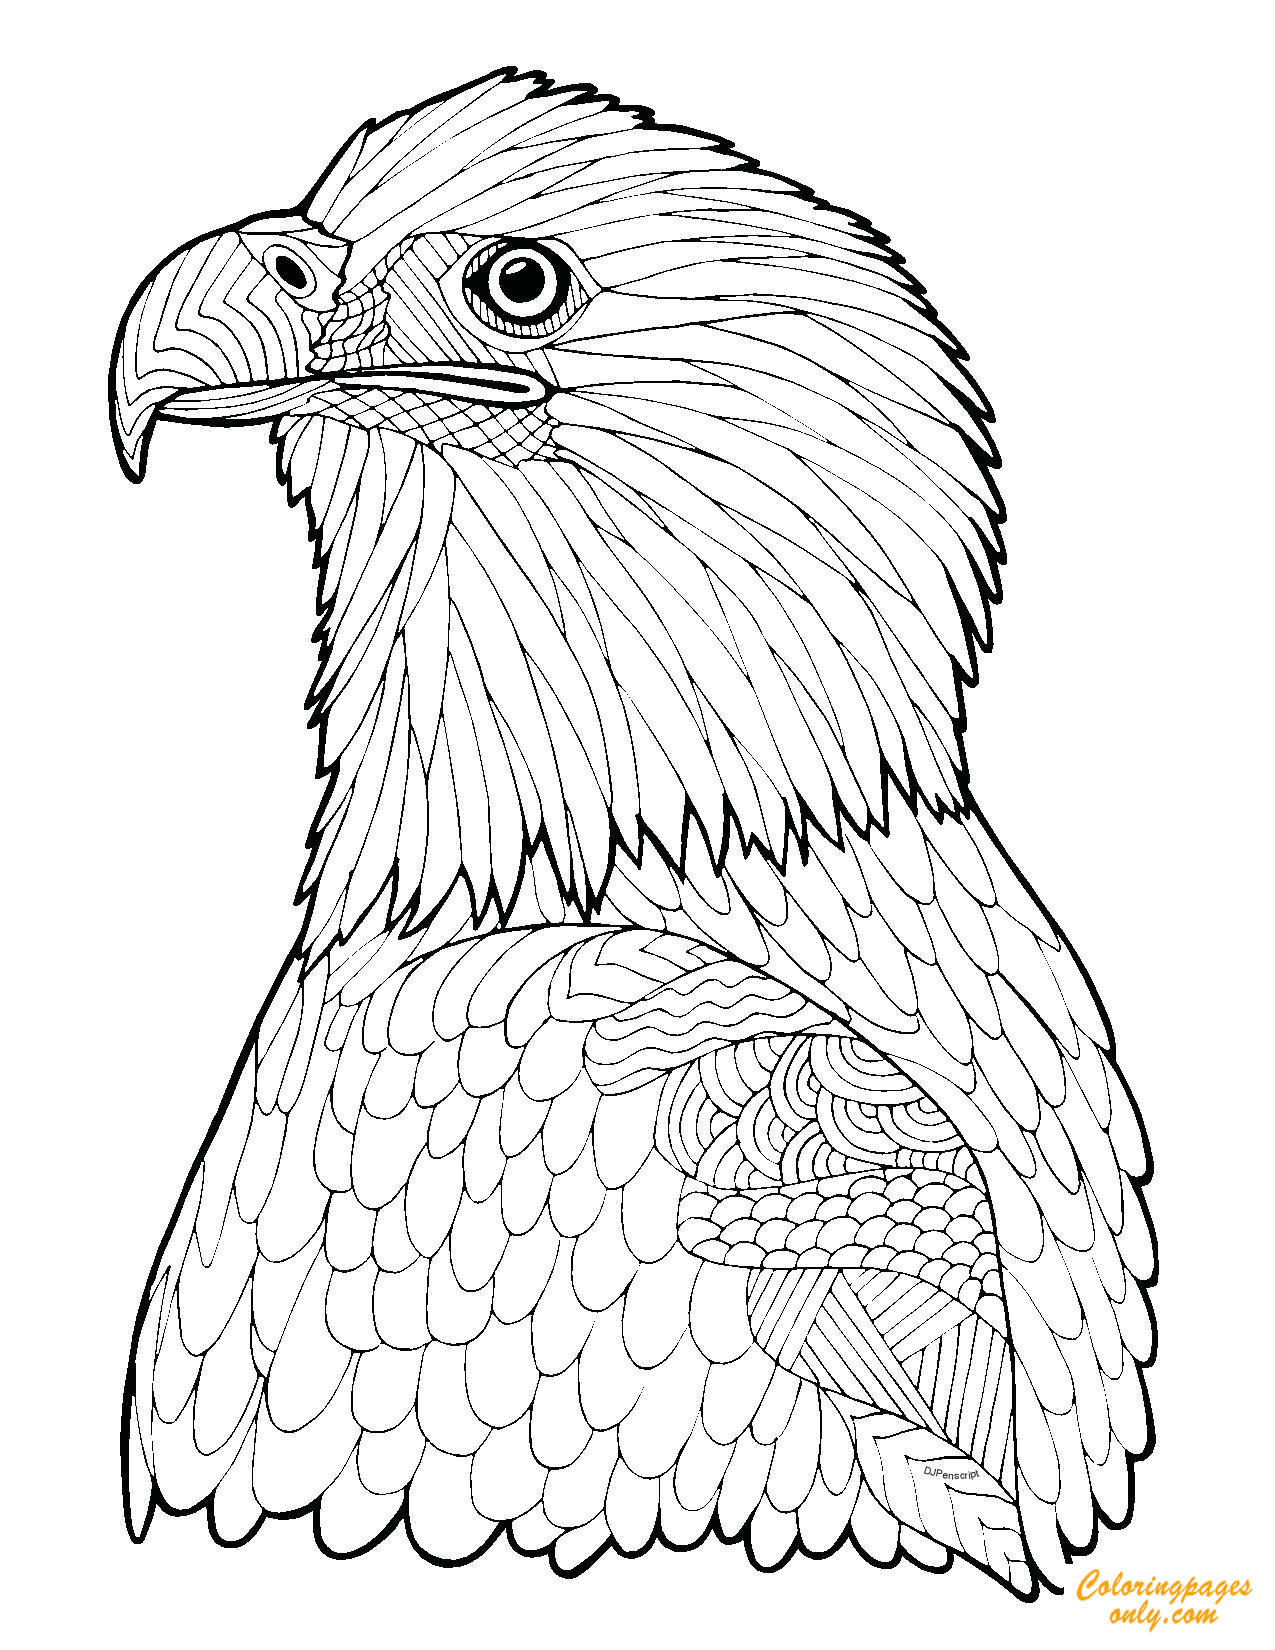 Zentangle Eagle Coloring Page Free Coloring Pages Online